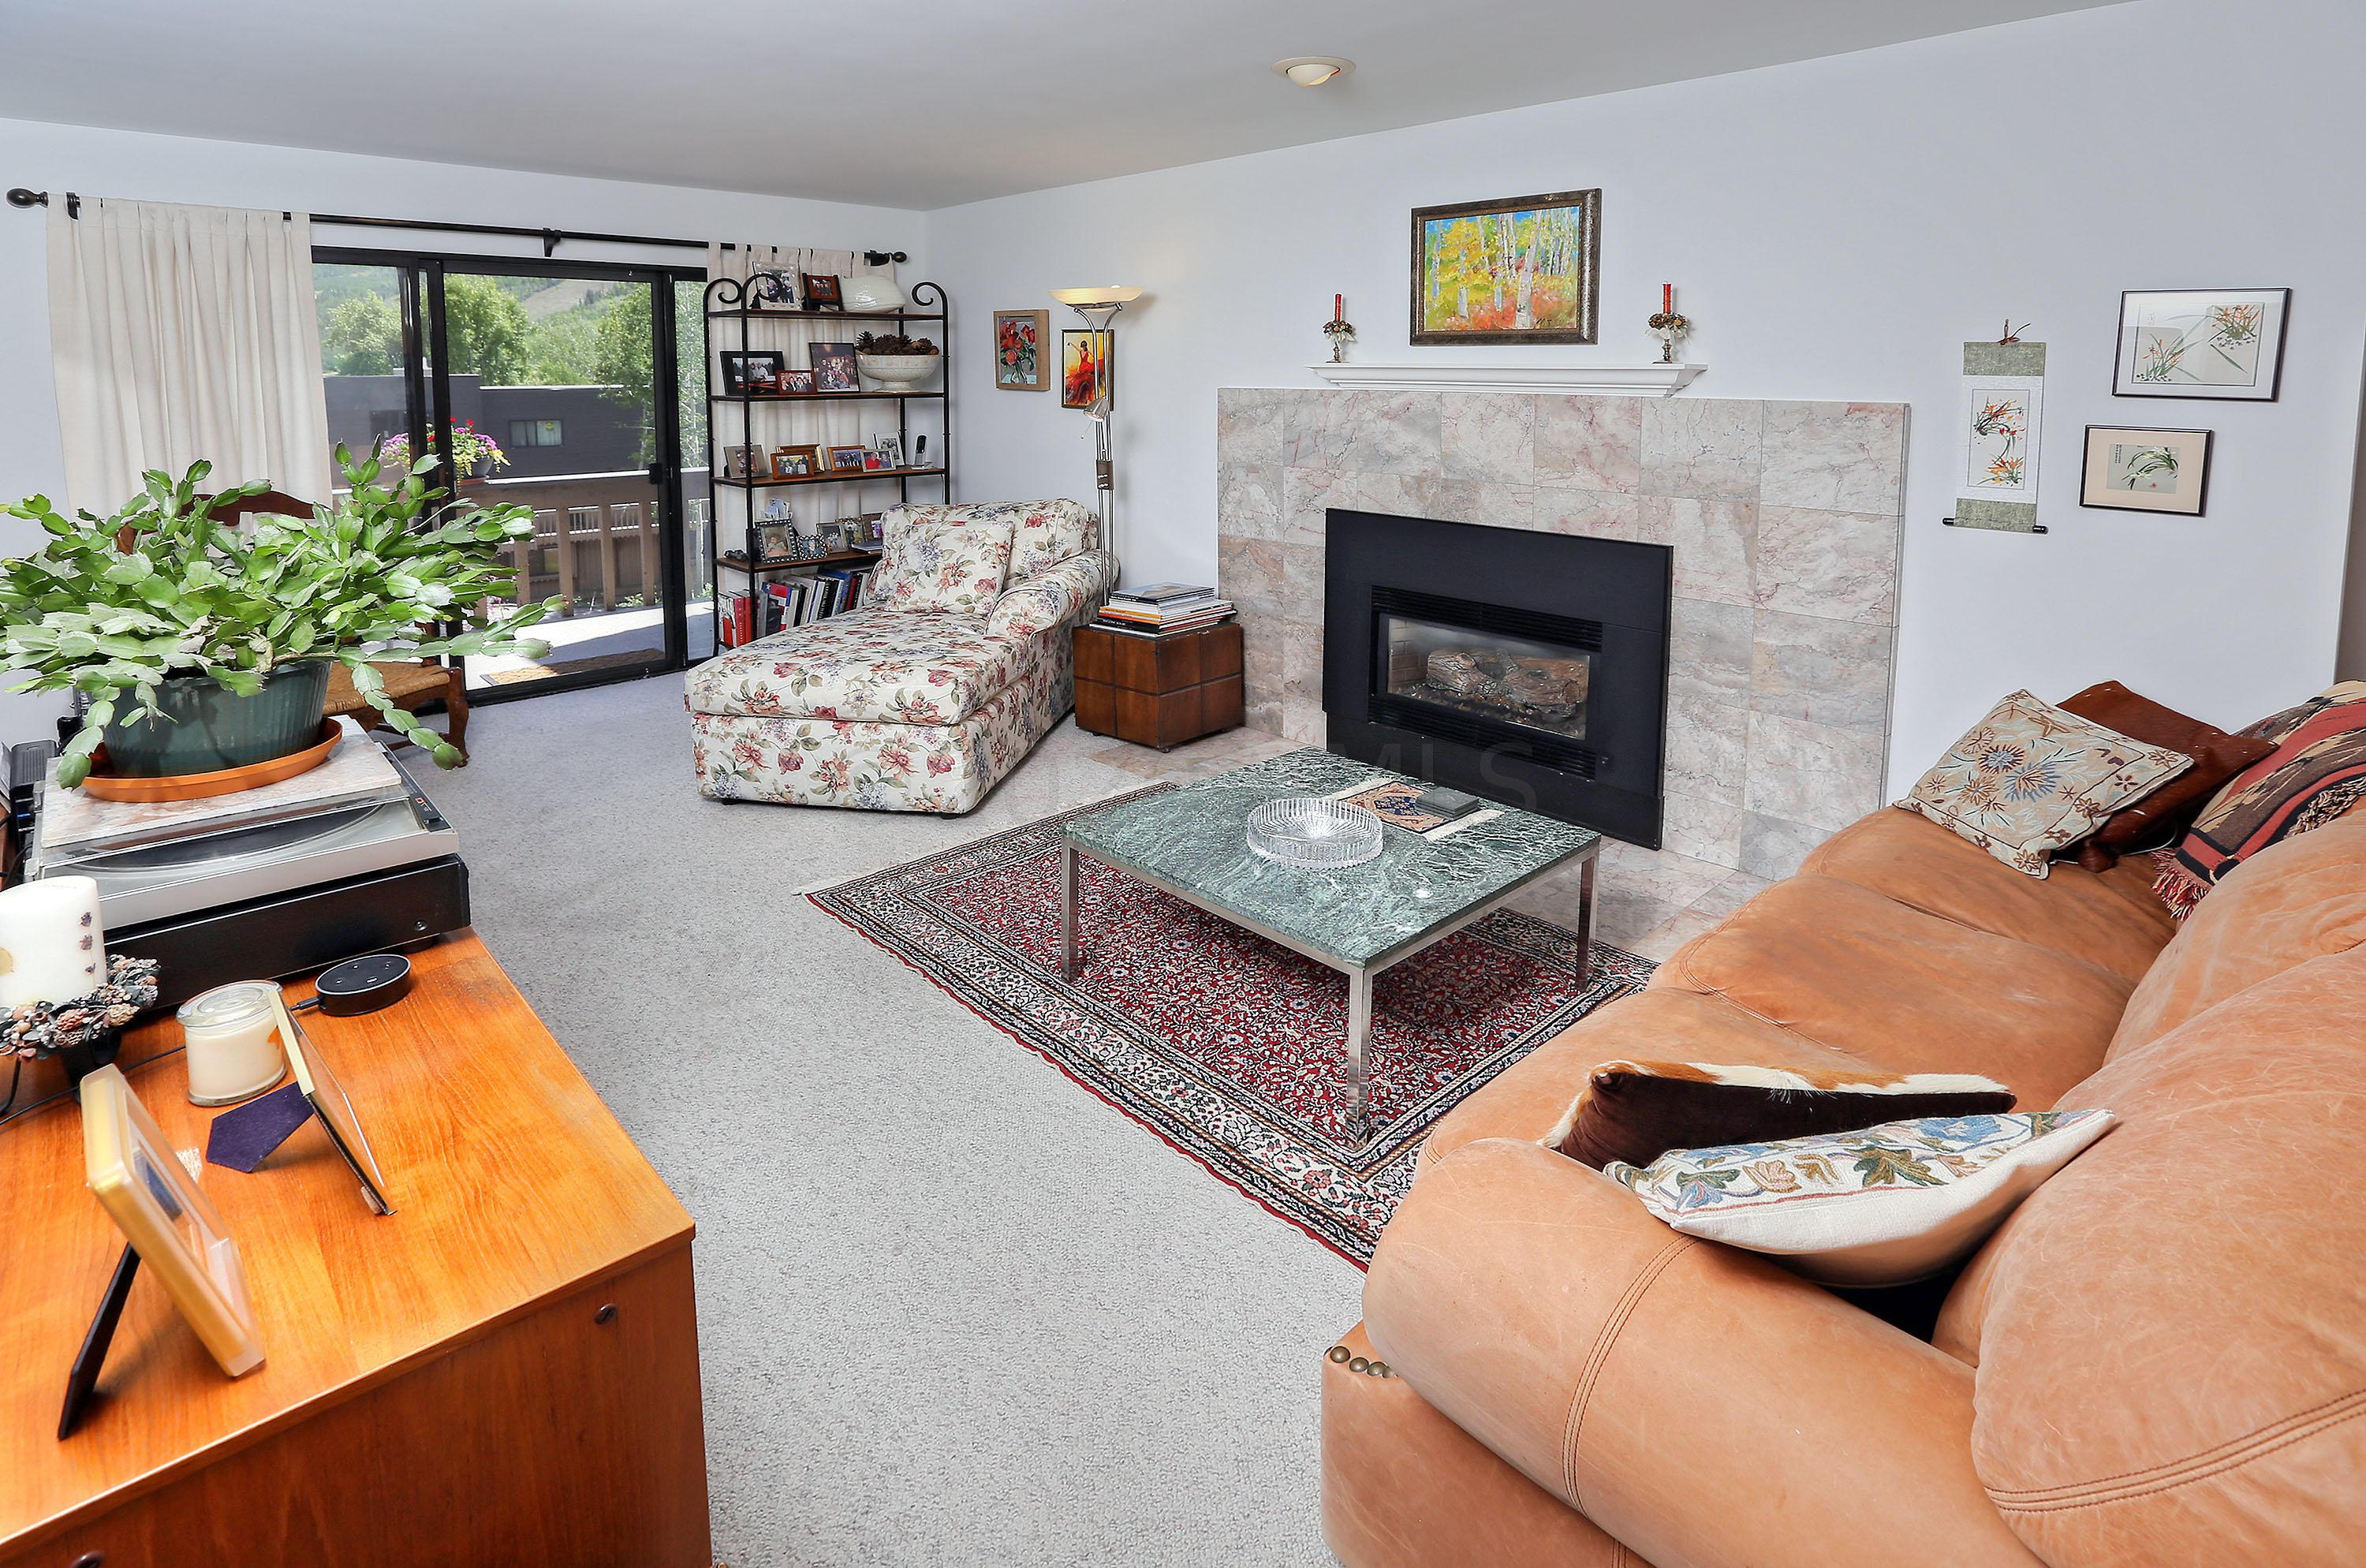 980 Vail View Drive, A204, Vail, CO 81657 Property Photo - Vail, CO real estate listing